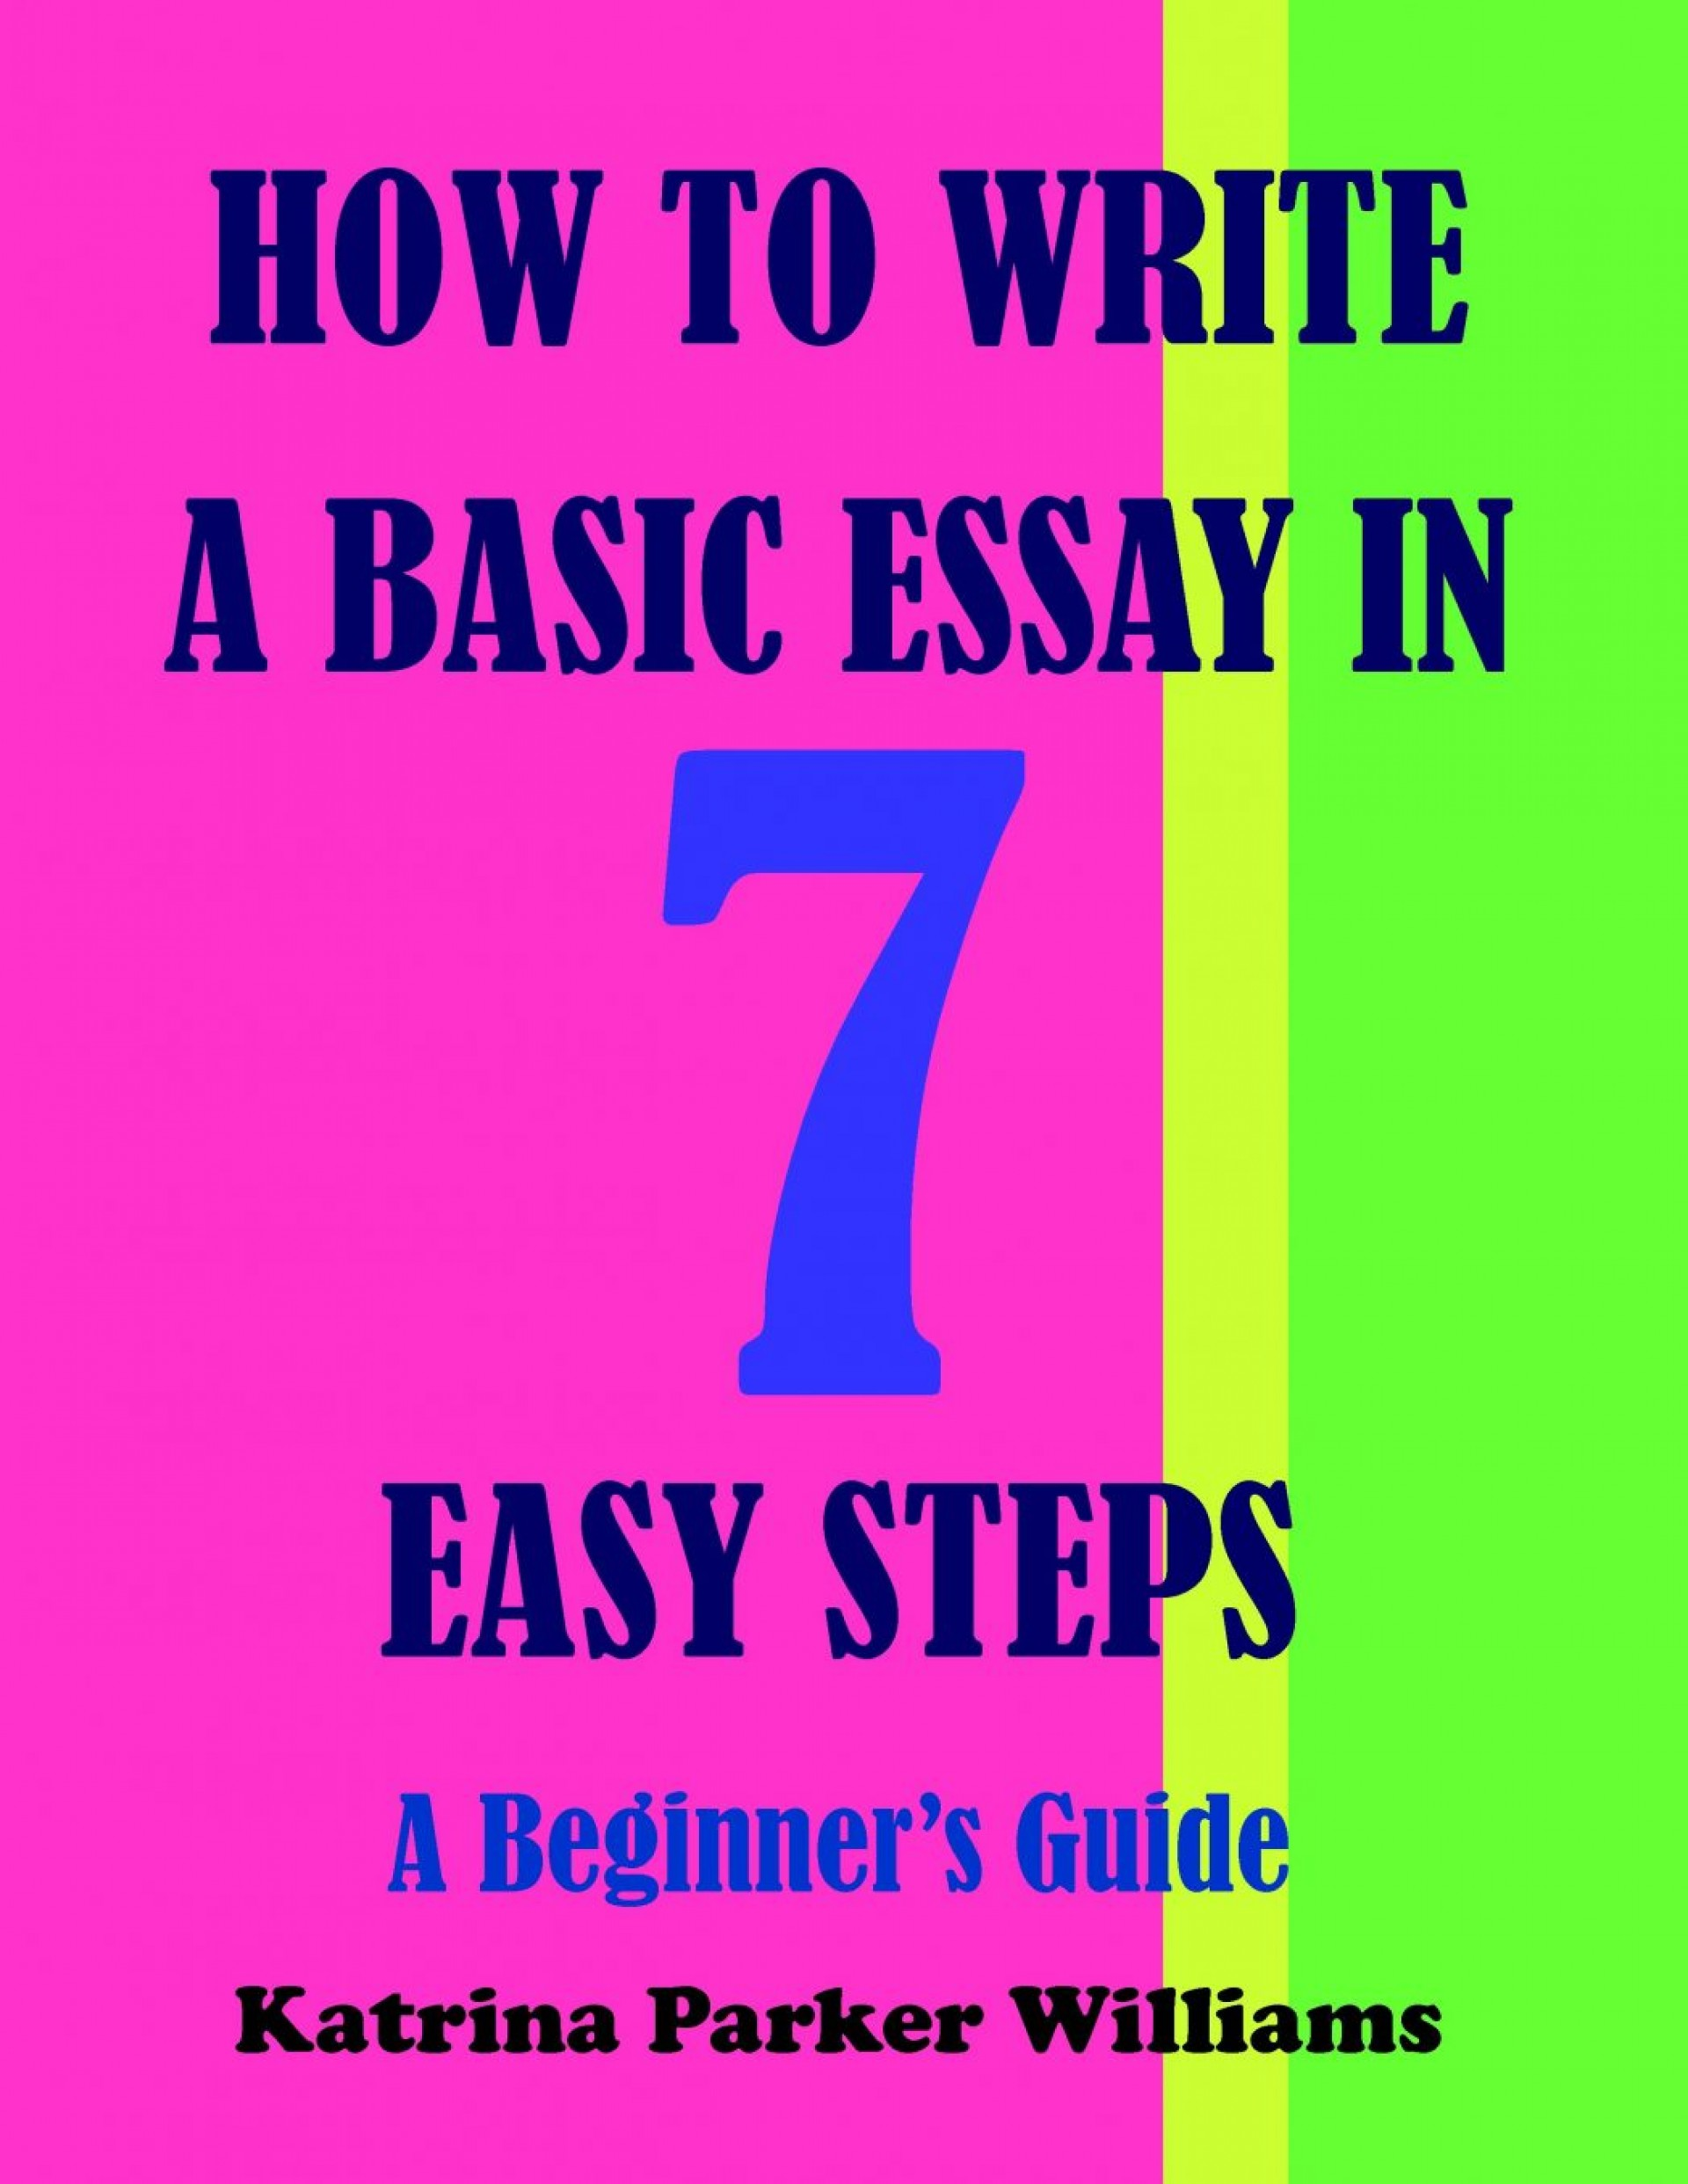 014 Essay Help Easy Books To Improve Your Writing How Write Basic In Seven With 1048x1356 An About Book Marvelous A Analytical Comparing Two You Haven't Read Argumentative 1920